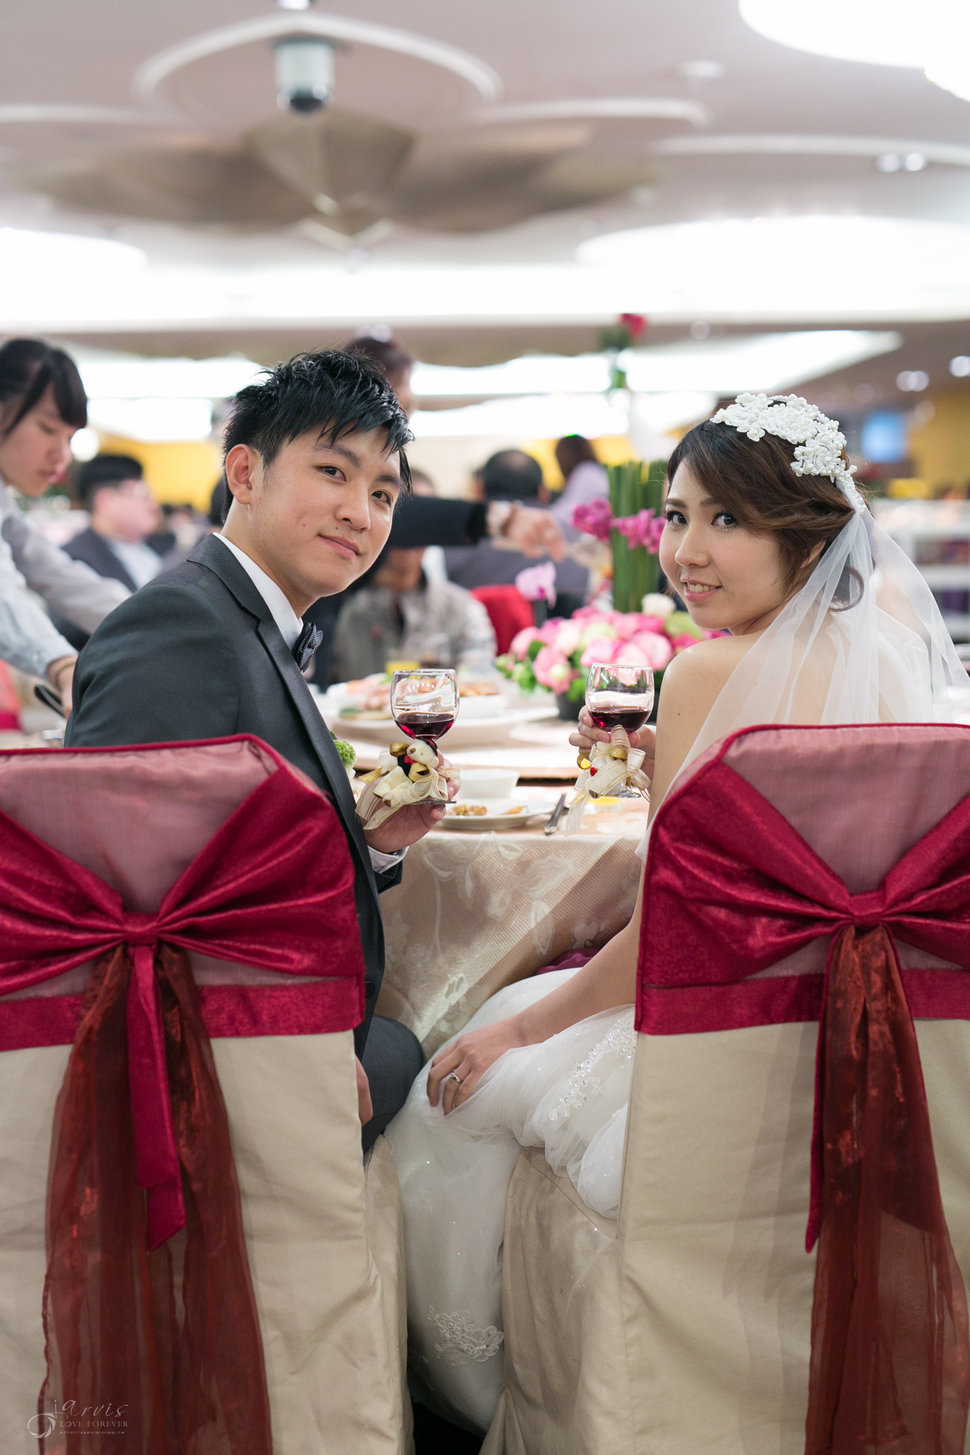 2D7A7374 - Jarvis Ding - 結婚吧